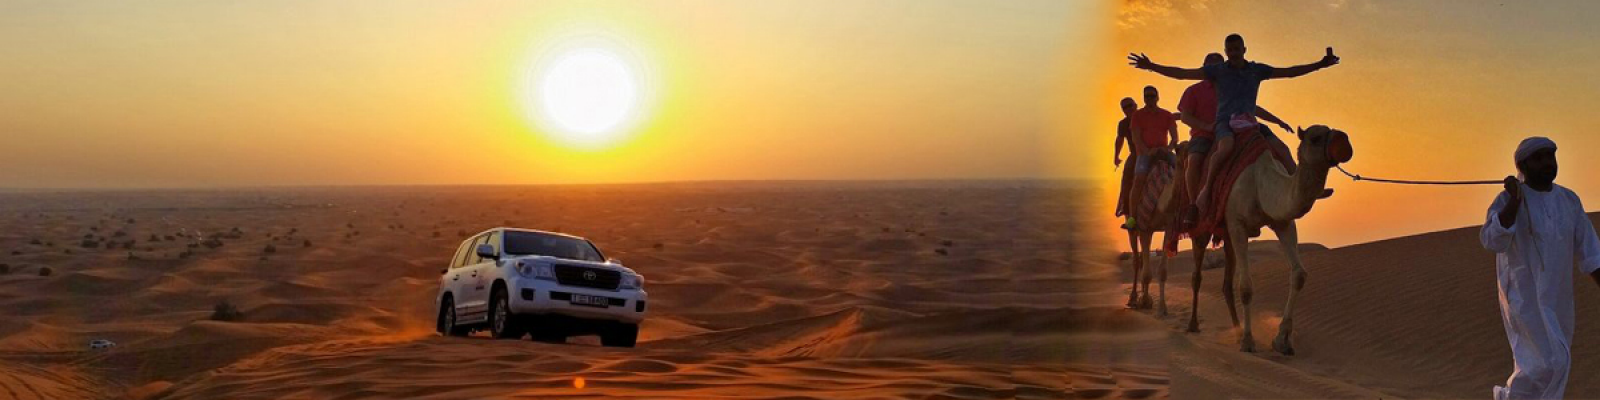 sunrise desert safari, sunrise desert safari tour dubai, sunrise desert safari in dubai